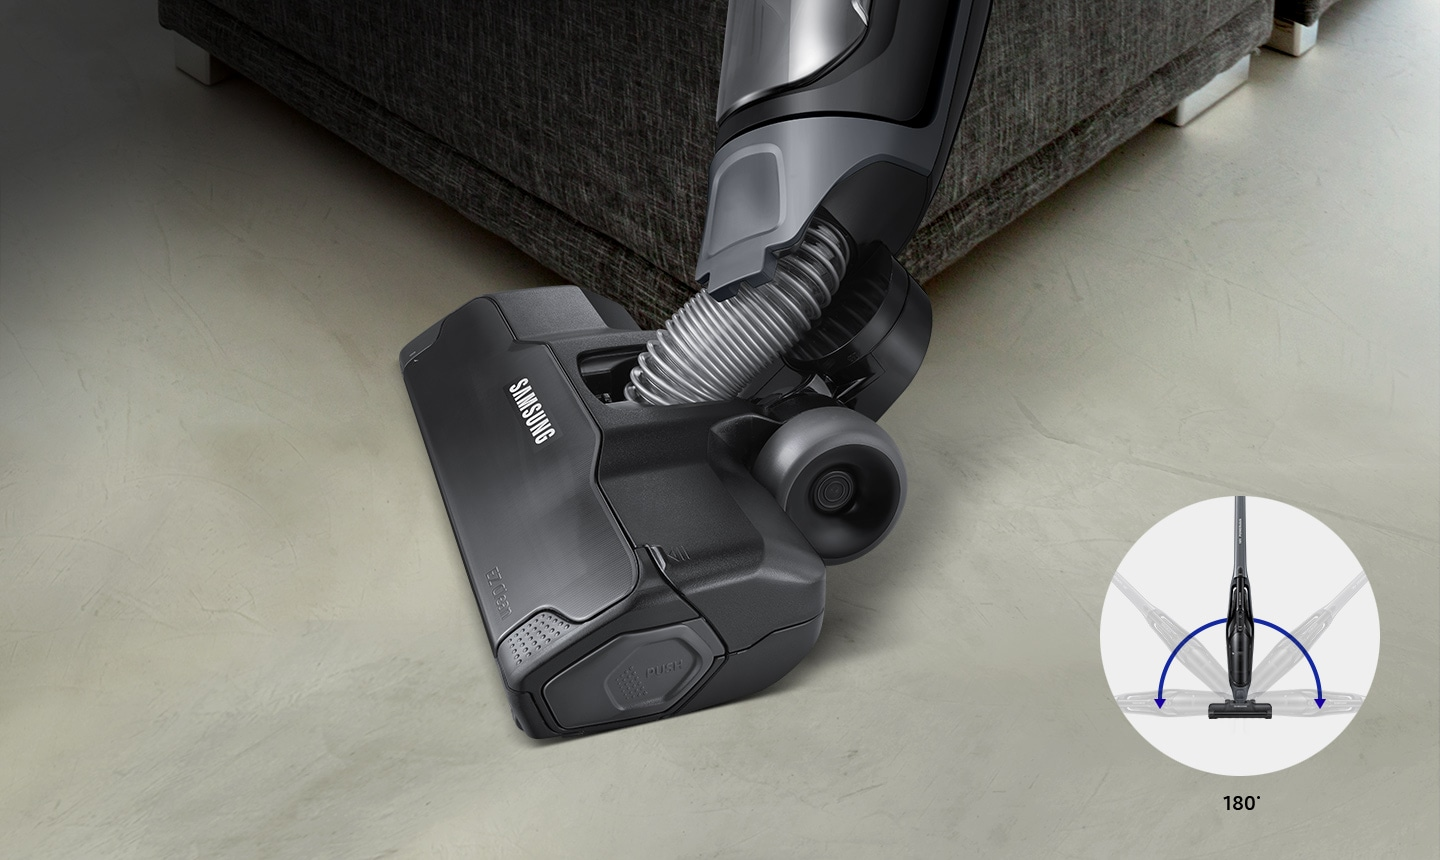 Samsung Extreme suction power POWERstick vacuum cleaner – an image of easy handling and agile turning for an extra easy movement